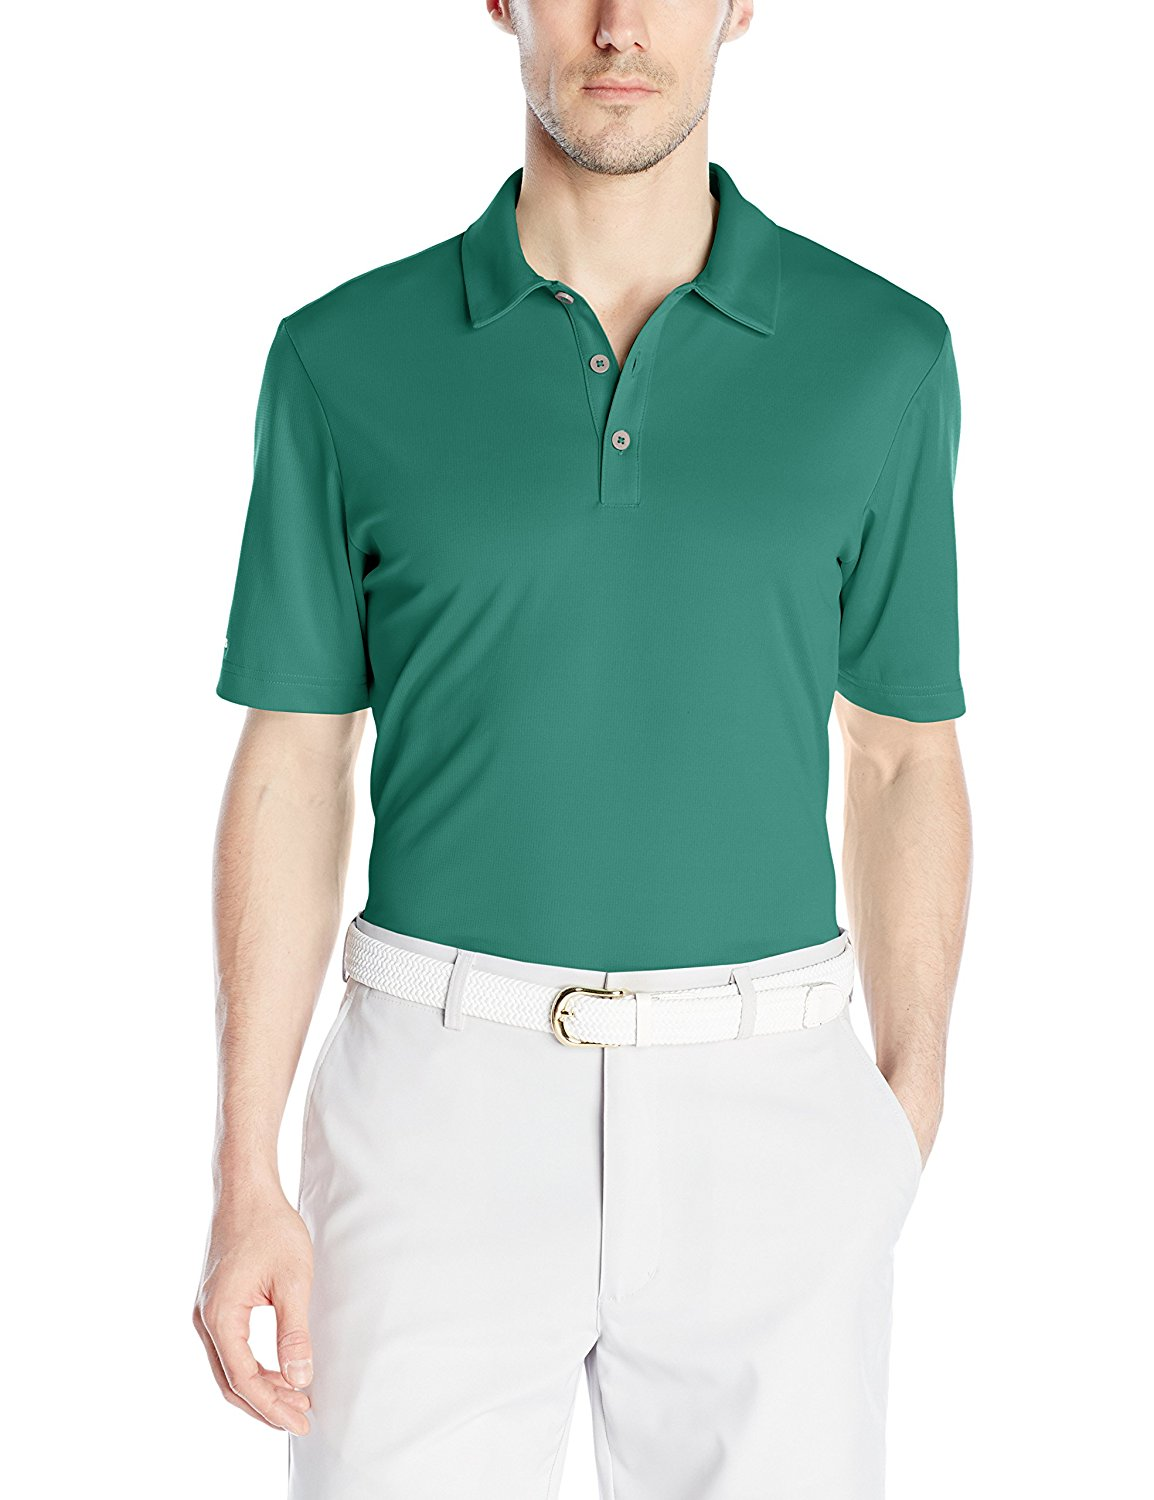 Ebay items to sell the closeout club autos post for What stores sell polo shirts